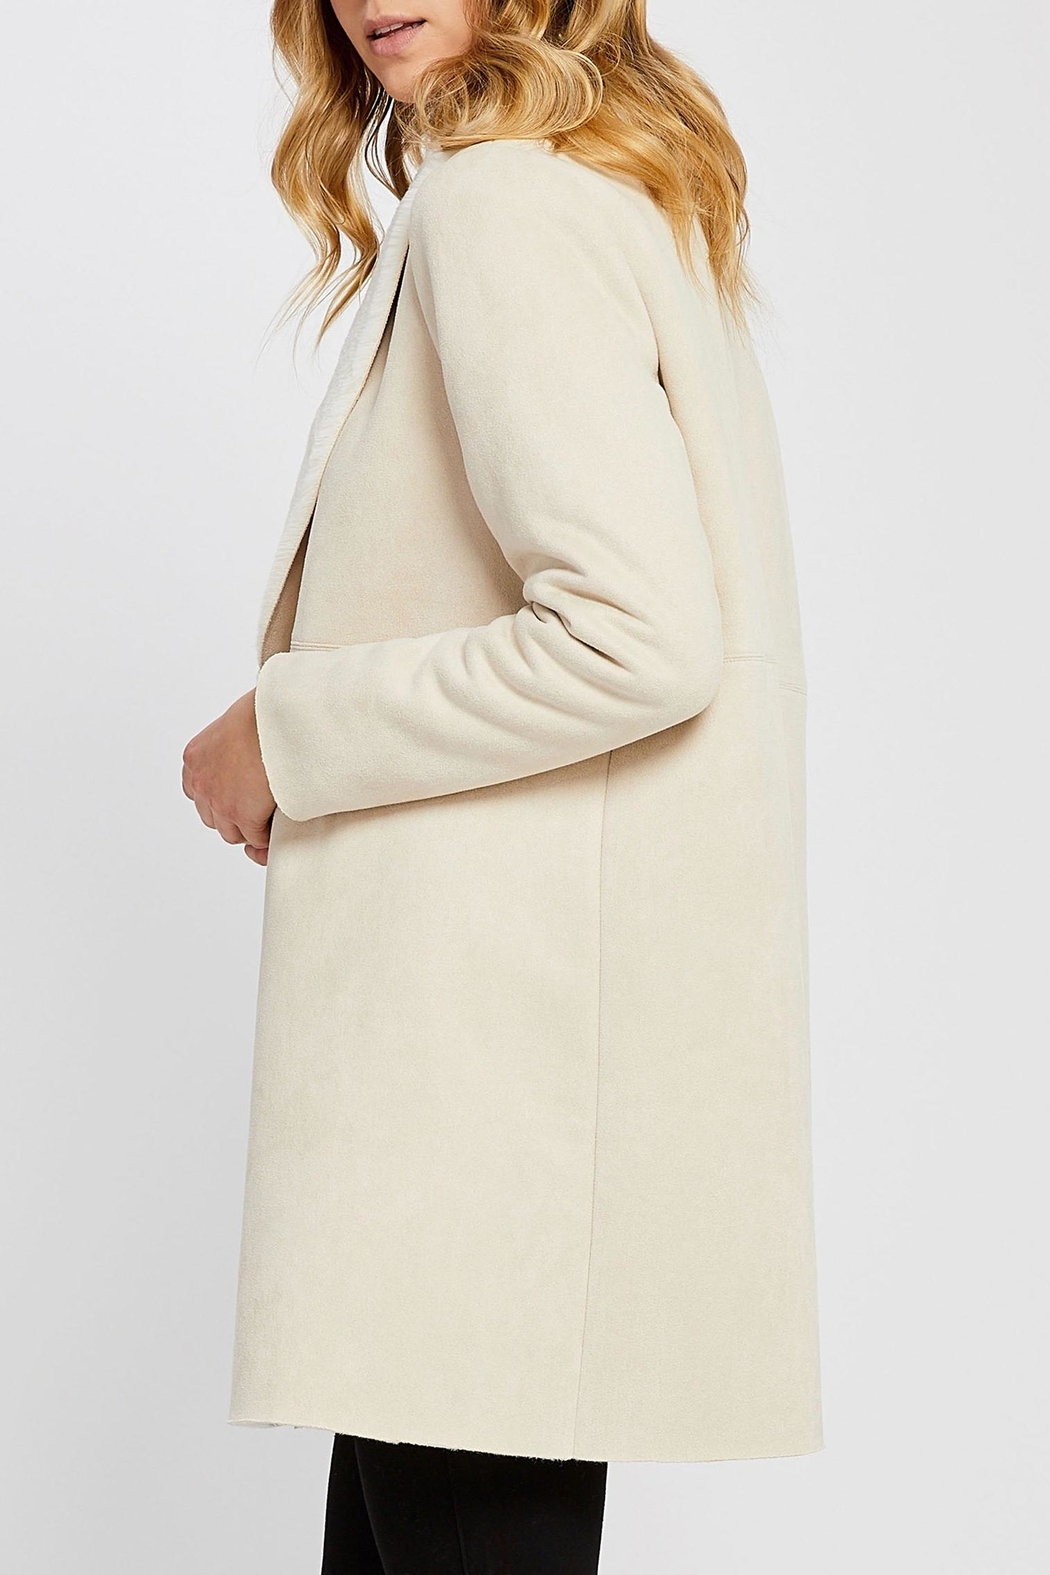 Gentle Fawn Faux Suede Coat - Front Full Image